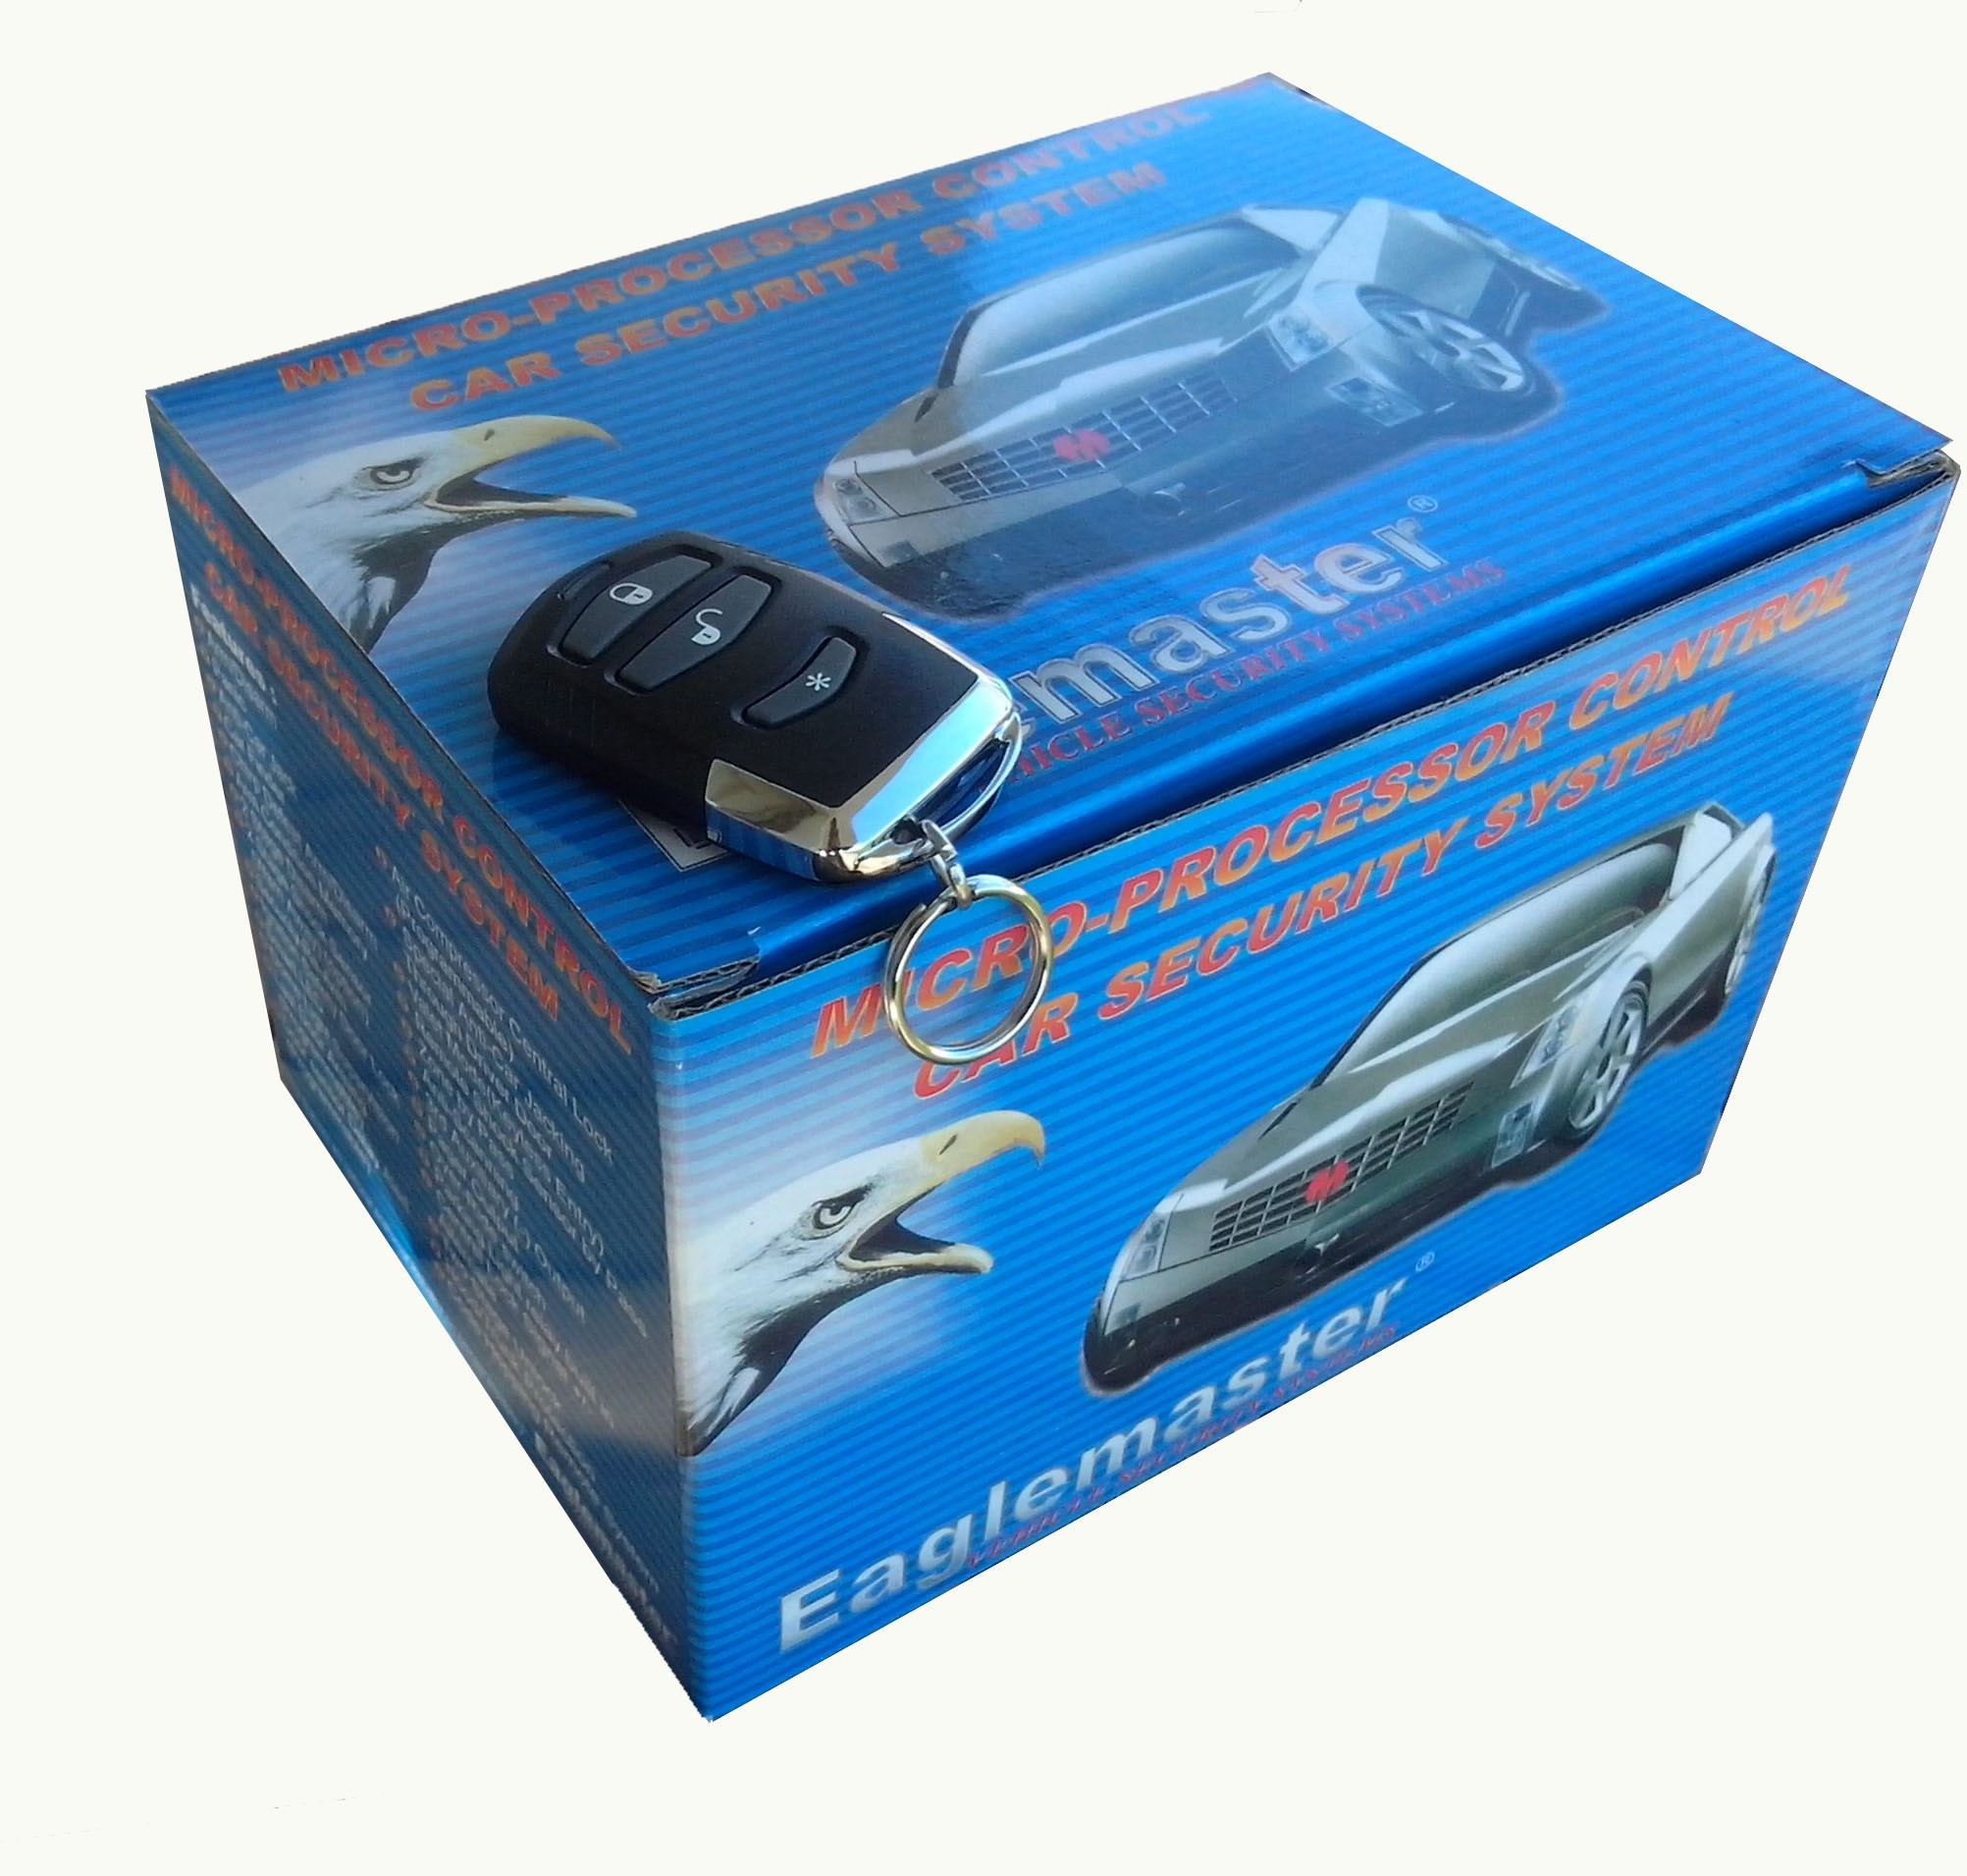 Car alarm Eaglemaster LT-5200 TX3N